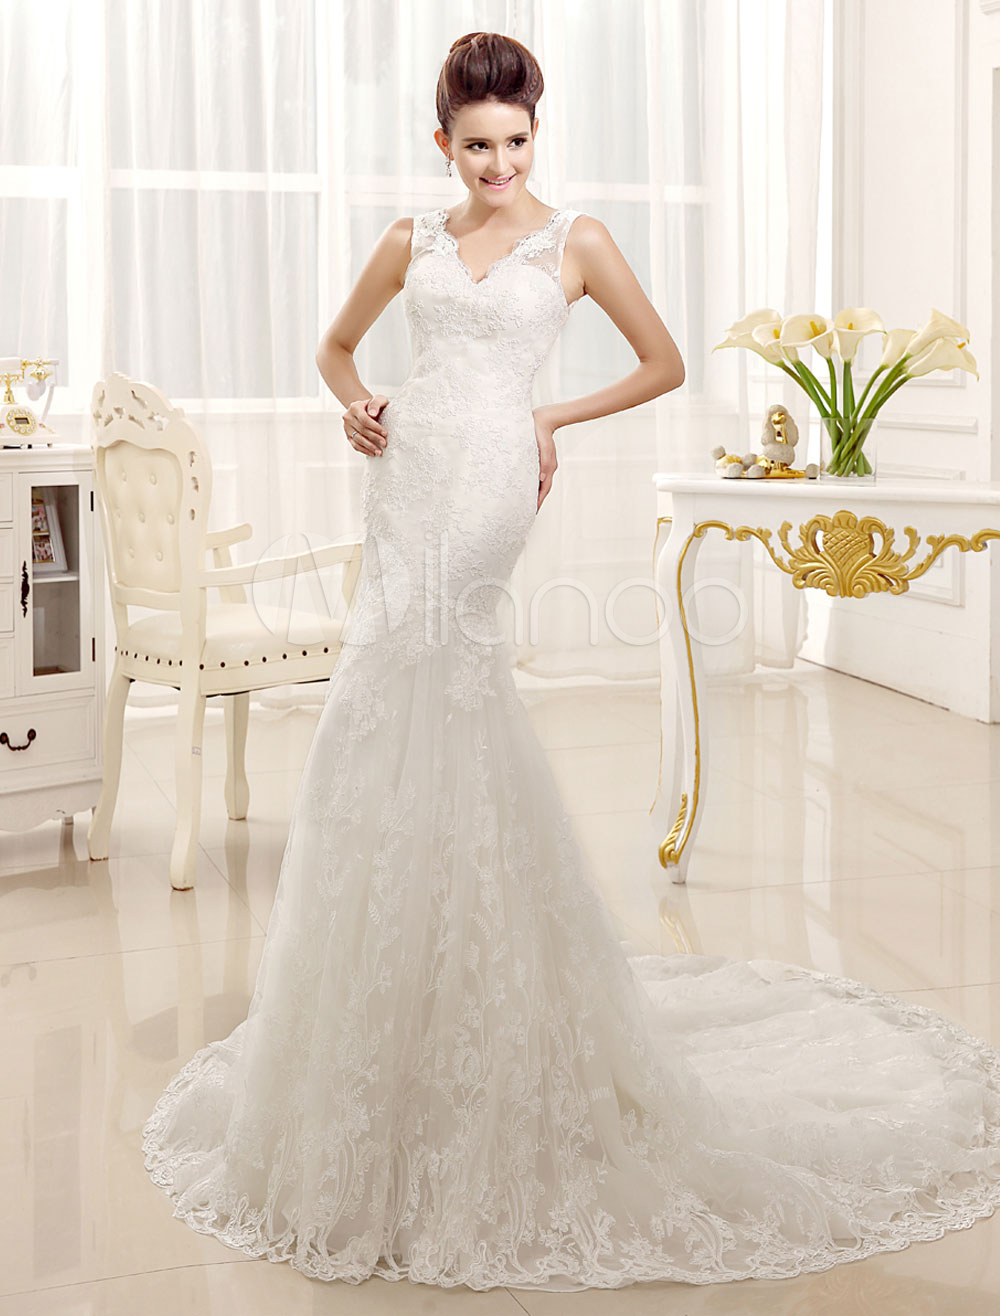 Lace Wedding Dresses Mermaid V Neck Bridal Gown Sleeveless V Back Ivory Bridal Dress With Train